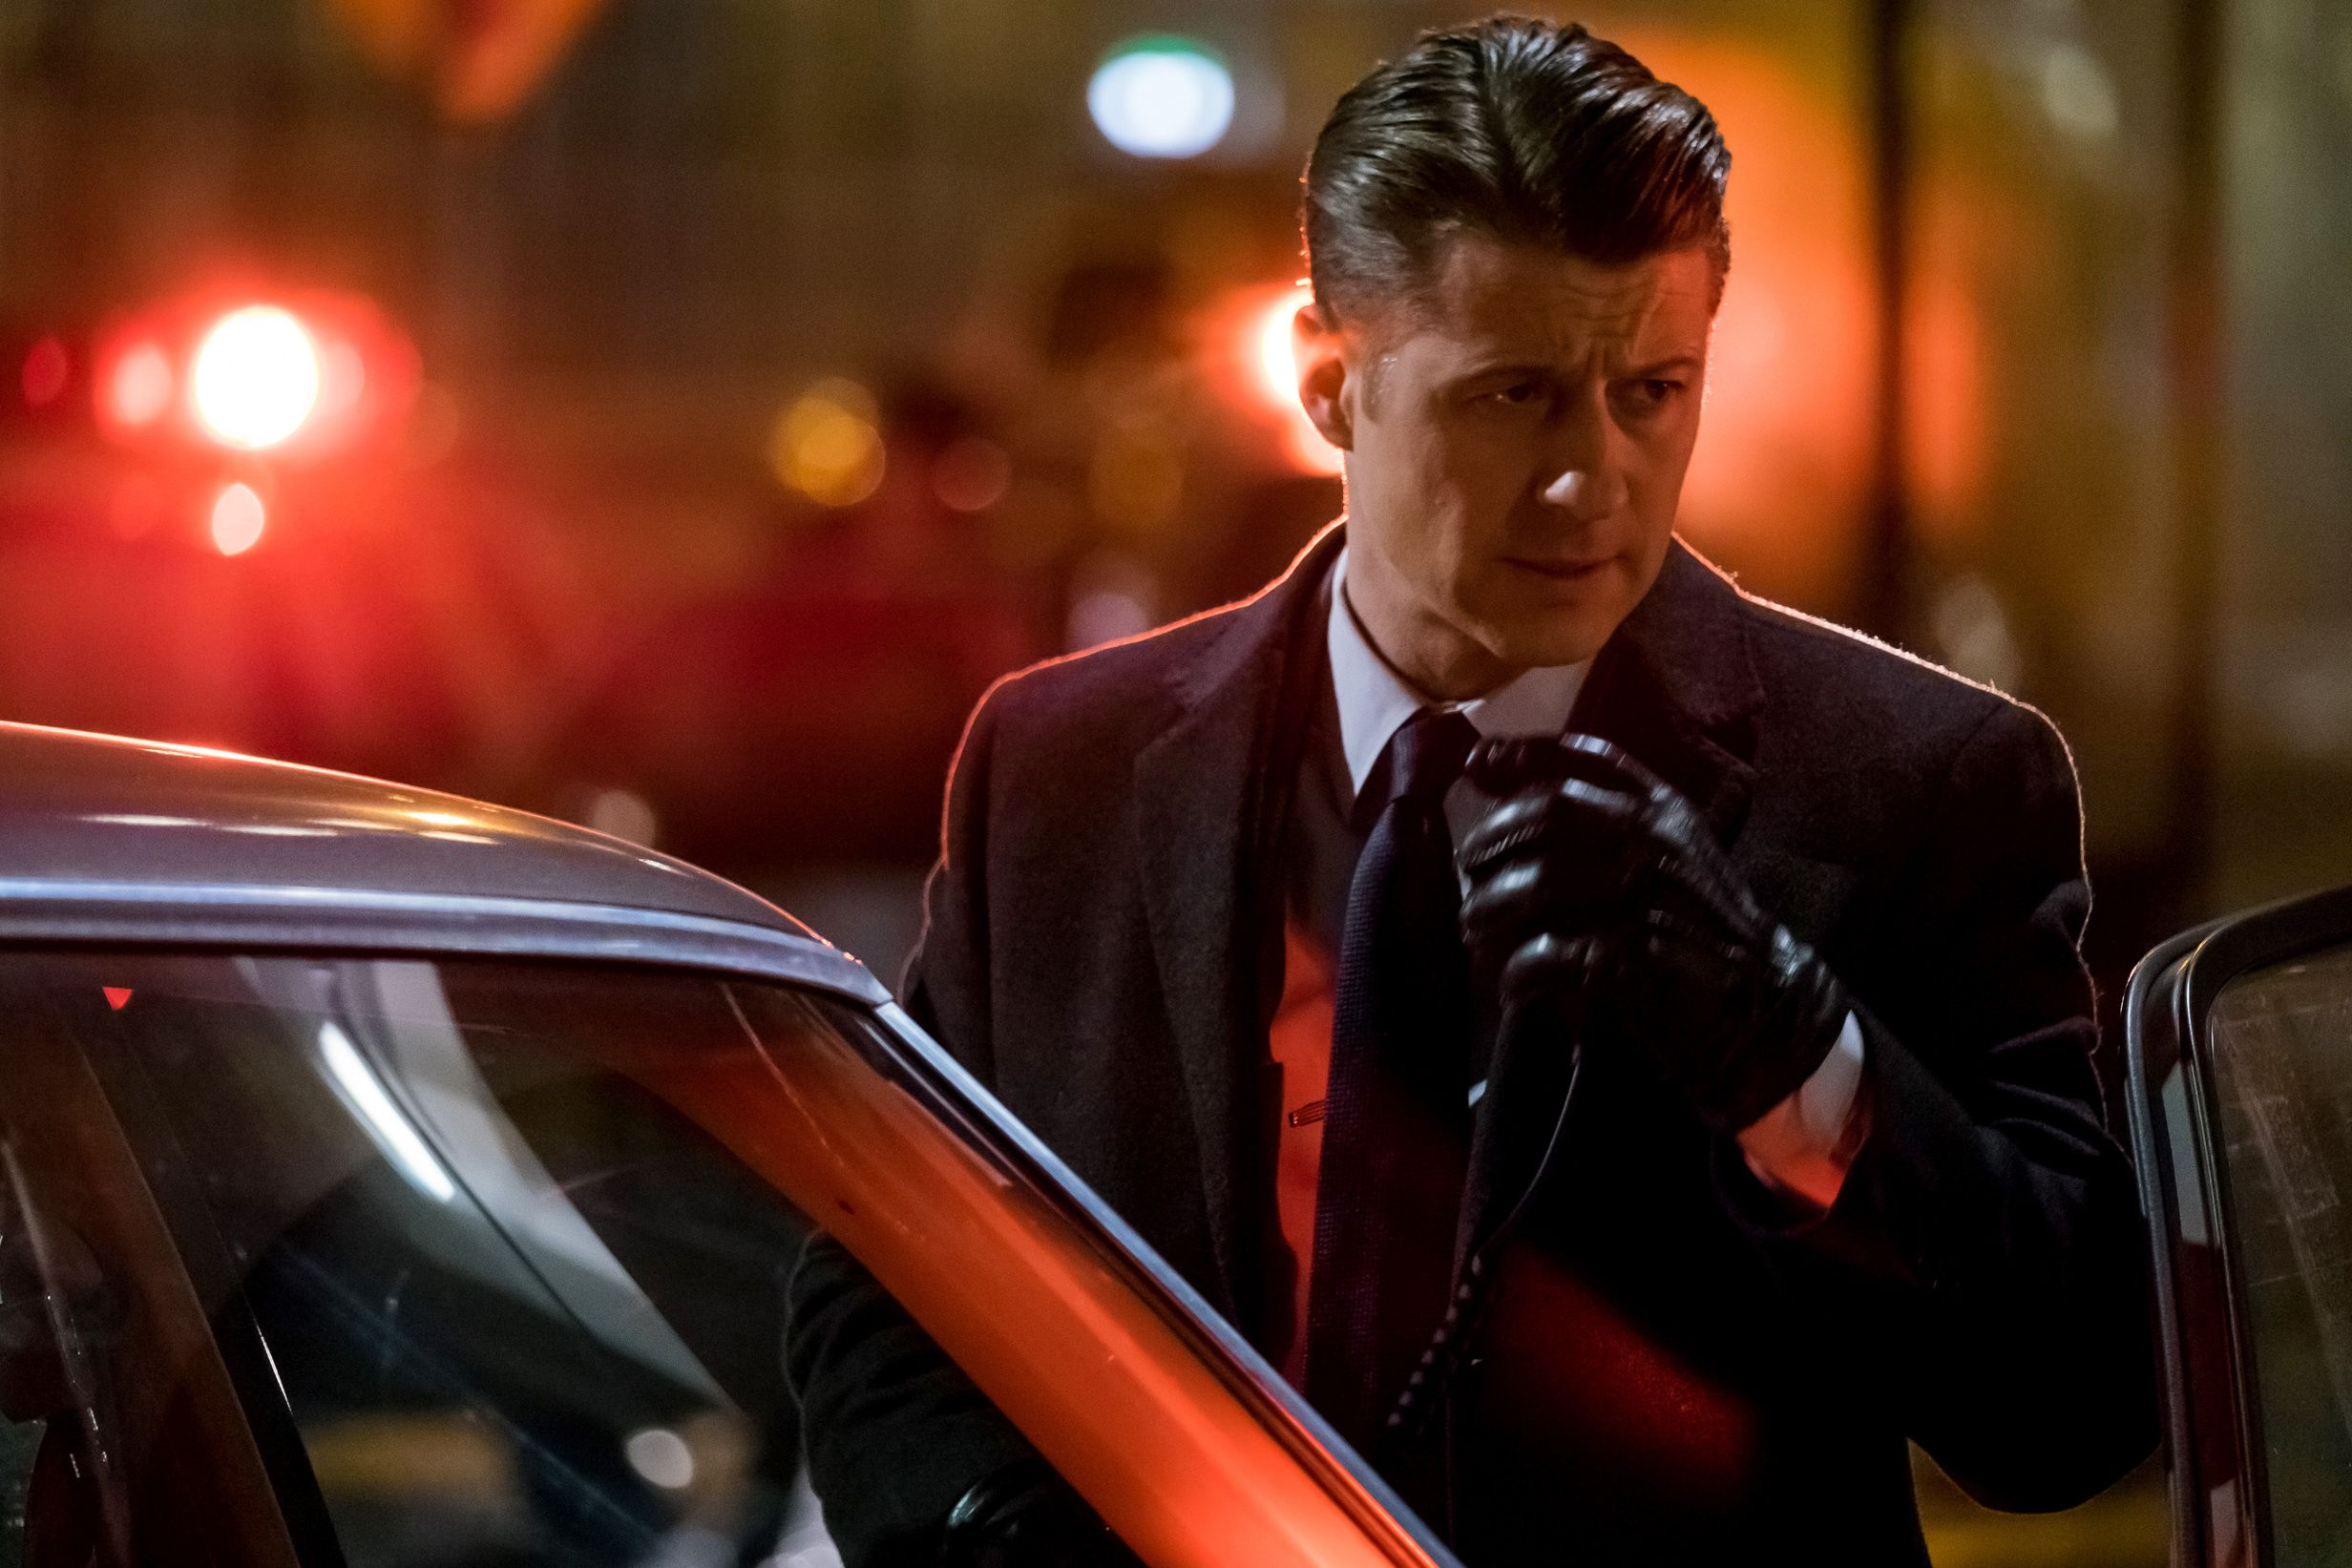 Gotham season 5 renewal official; will be final season